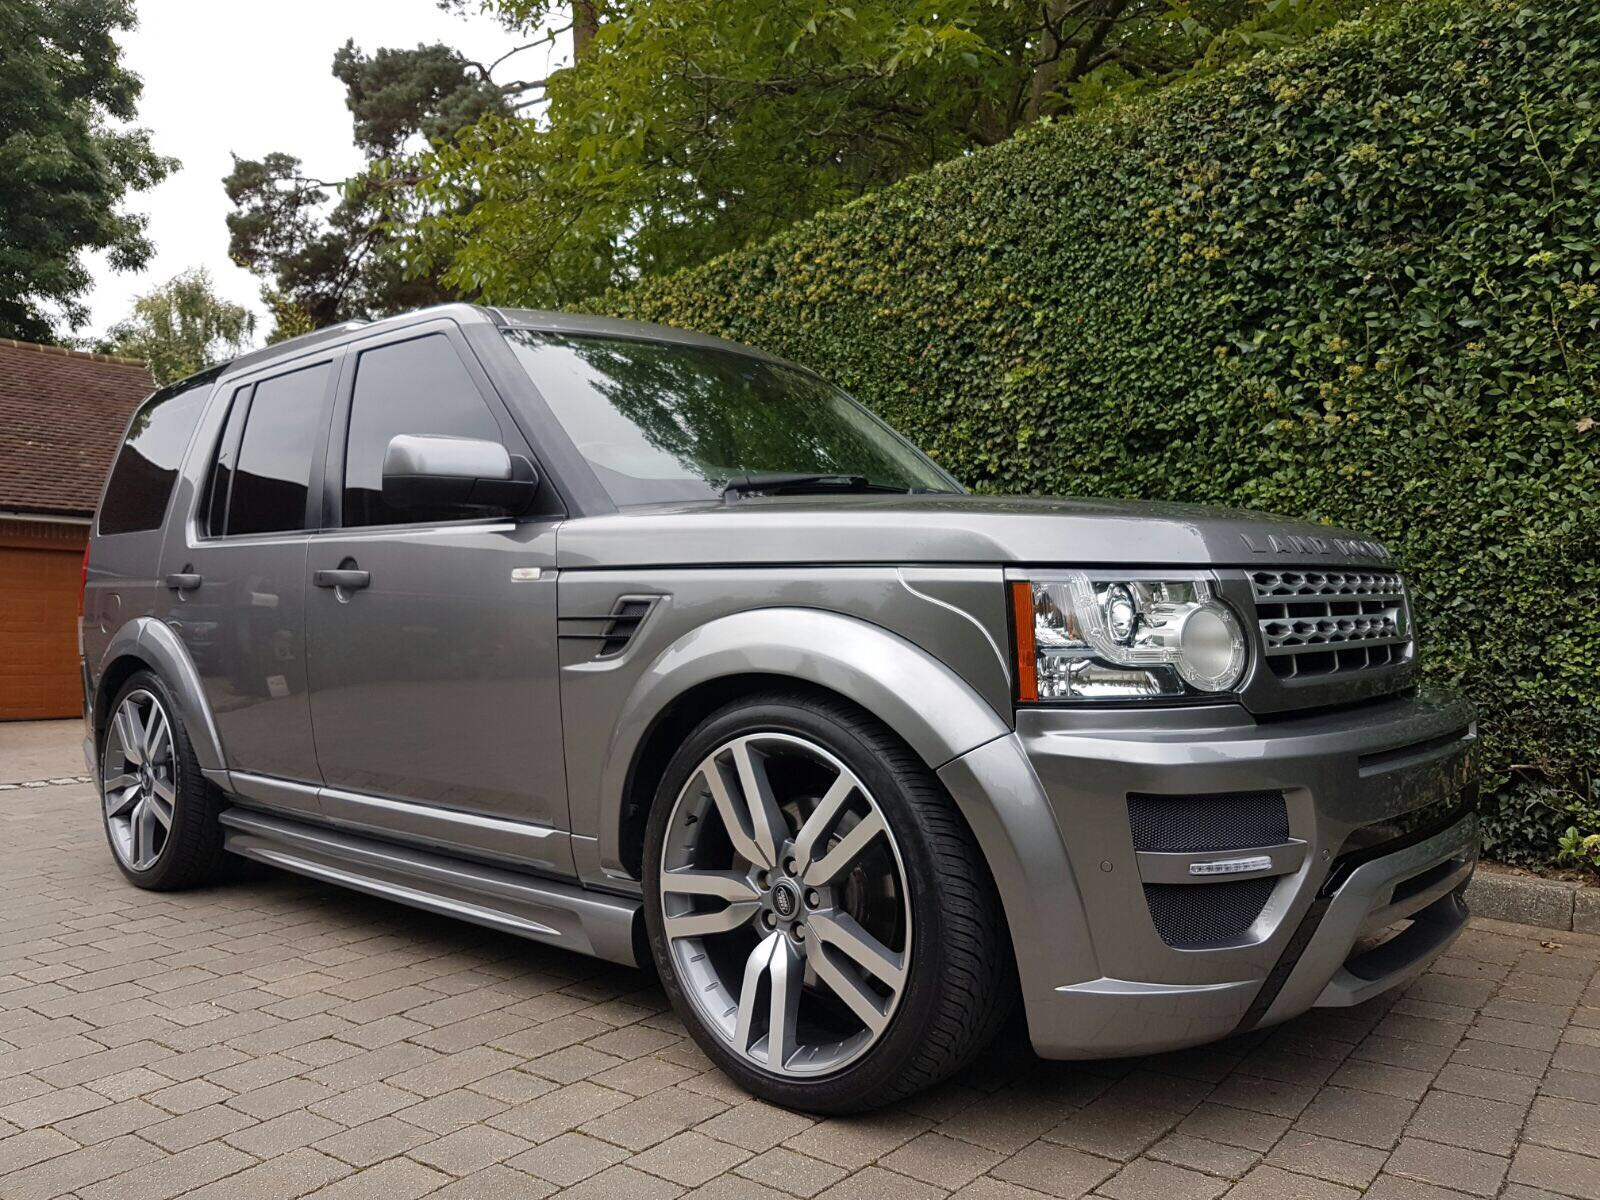 2011 Land Rover Discovery 4 LR7 Storm Edition body kit conversion